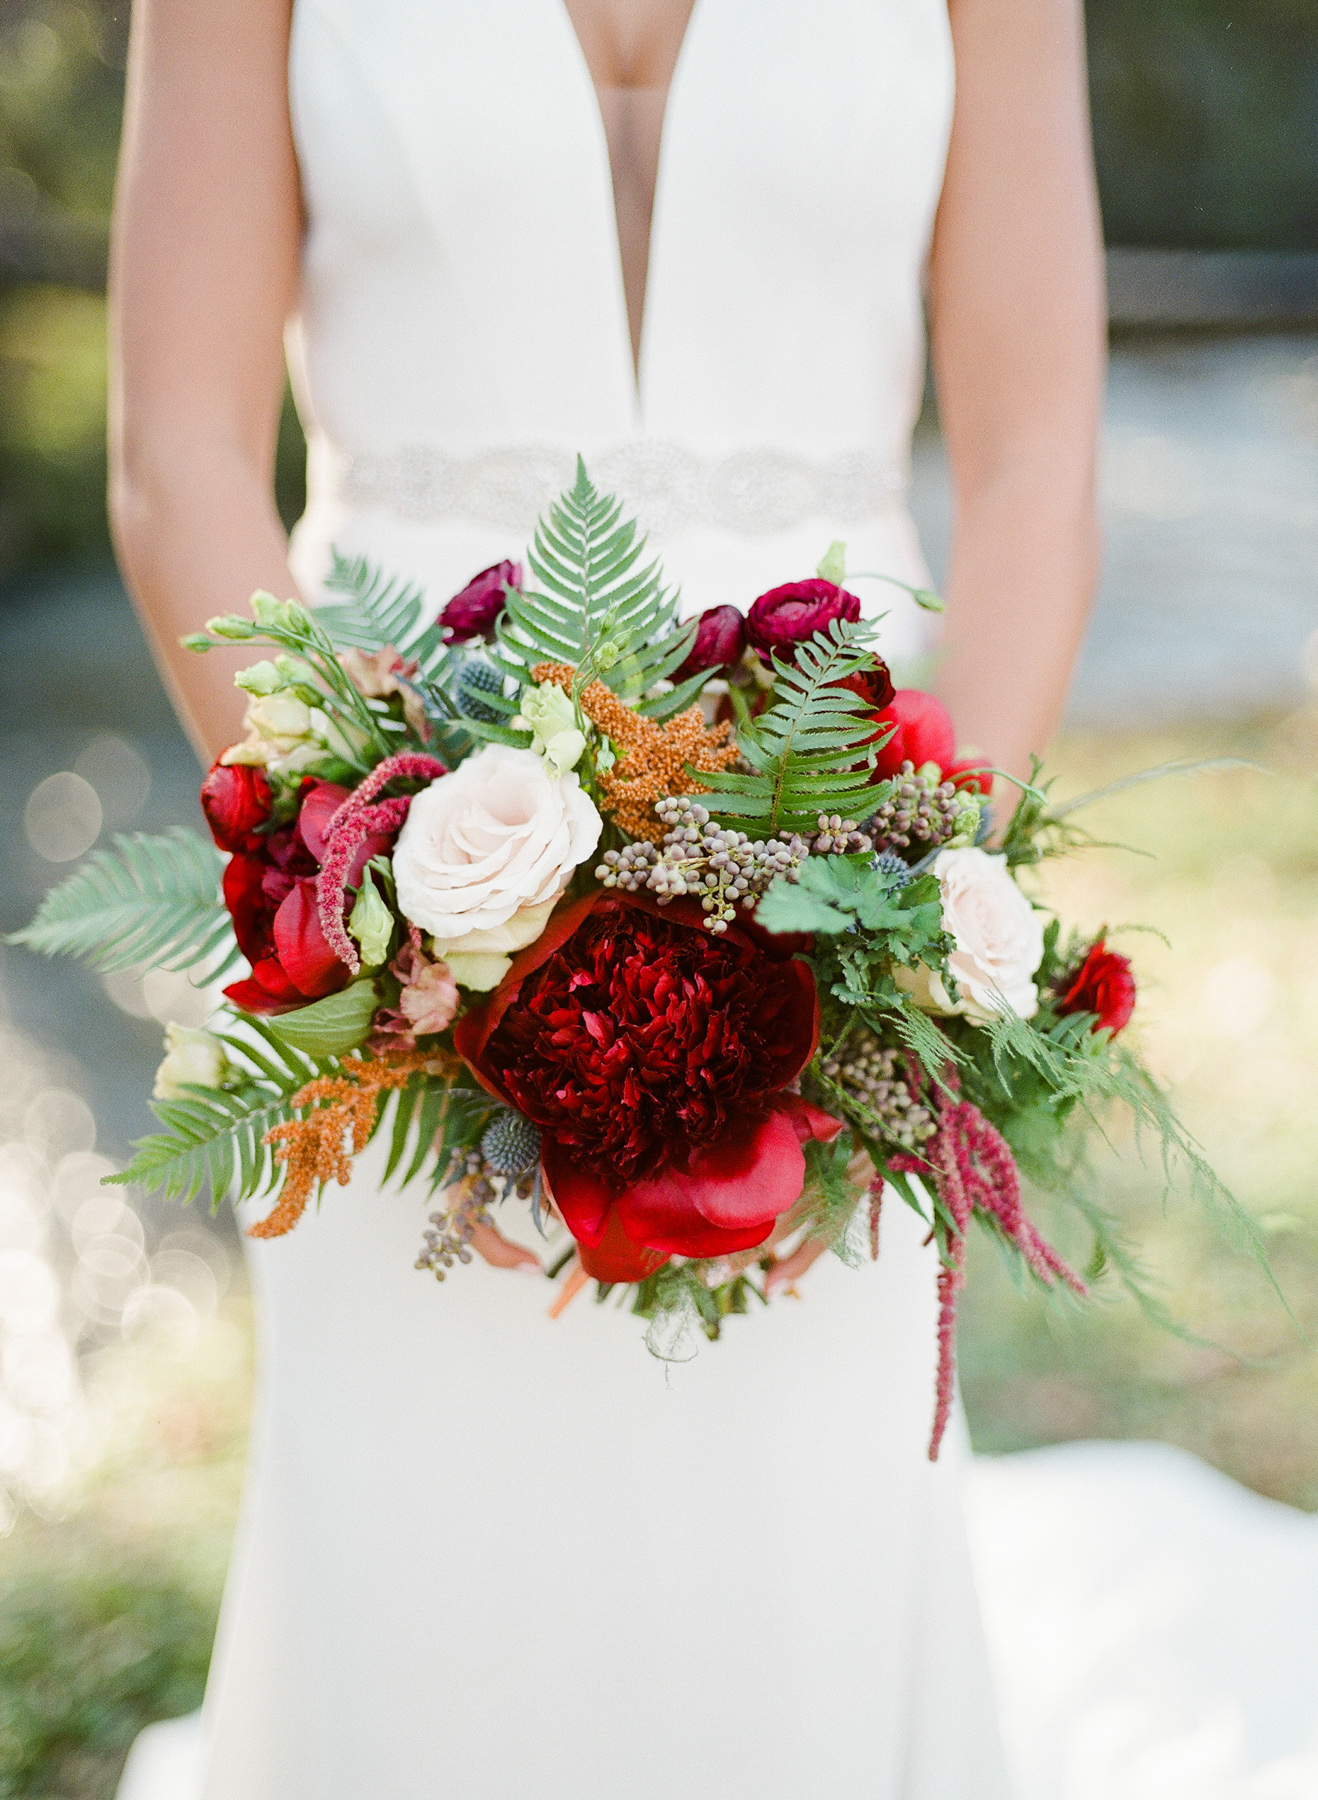 burgundy ranunculous and peonies, quicksand roses, deep blue privet berry, and bronze amaranthus with leafy ferns bouquet